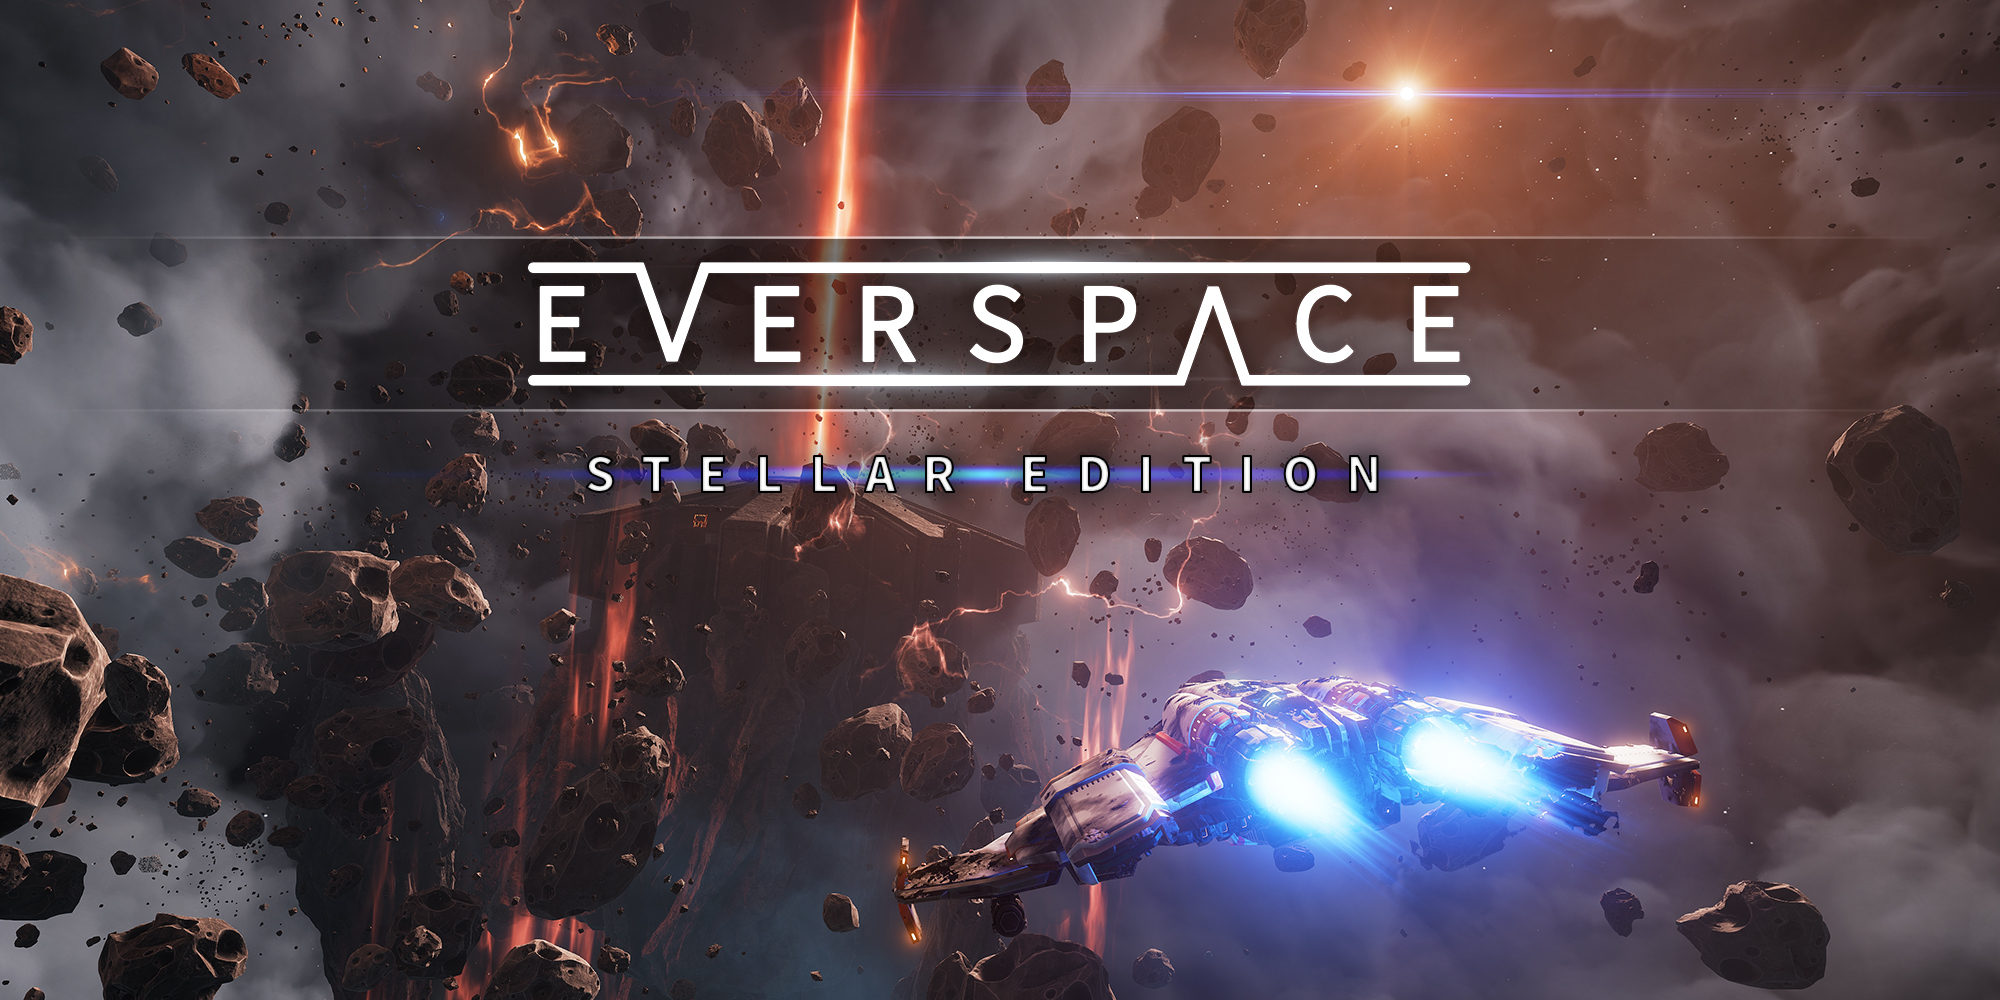 Everspace: Stellar Edition Set To Launch On December 11th